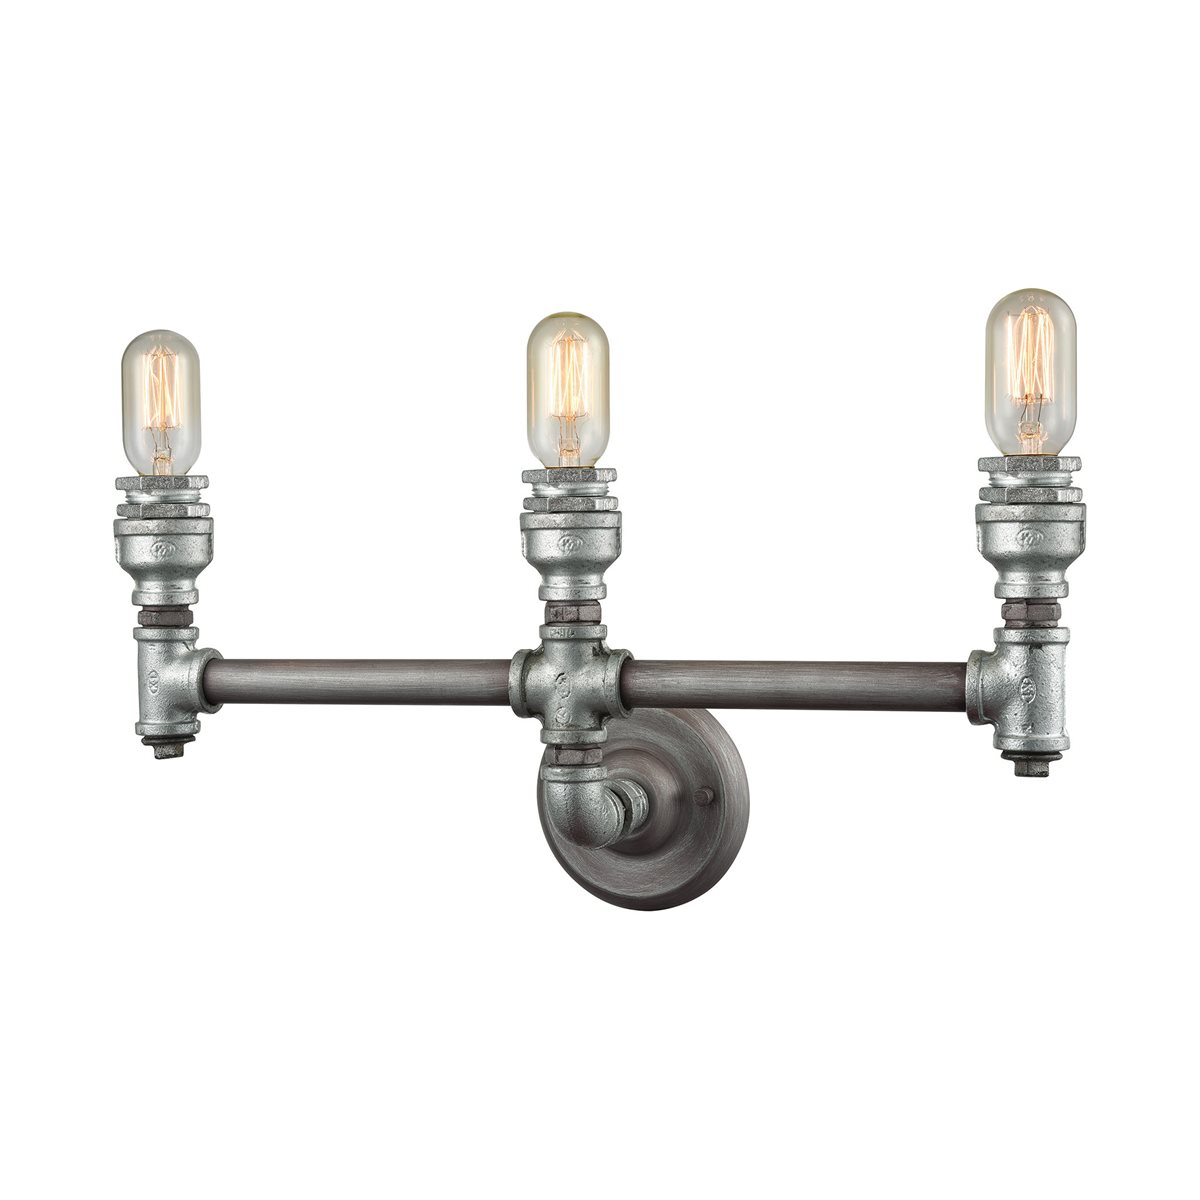 ELK Lighting Wall Sconce Lights, Furniture by ABD, Accentuations Brand